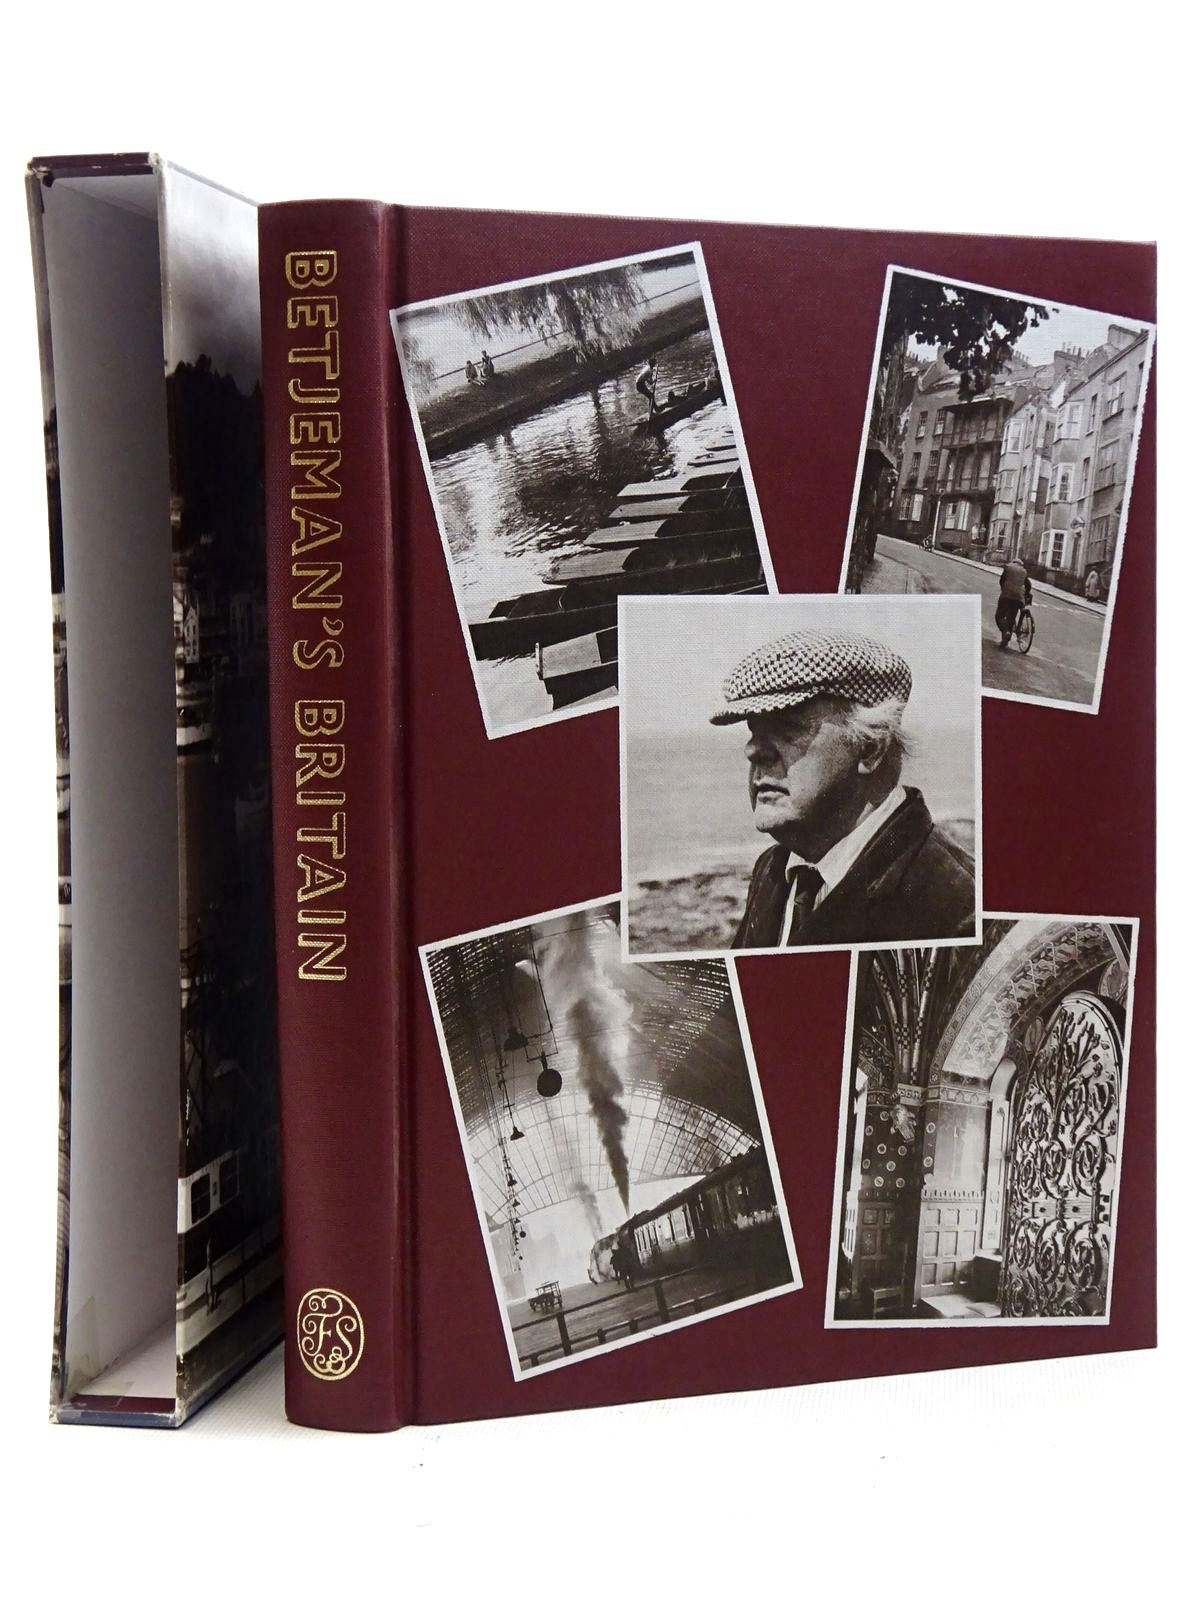 Photo of BETJEMAN'S BRITAIN written by Betjeman, John Green, Candida Lycett published by Folio Society (STOCK CODE: 2125433)  for sale by Stella & Rose's Books